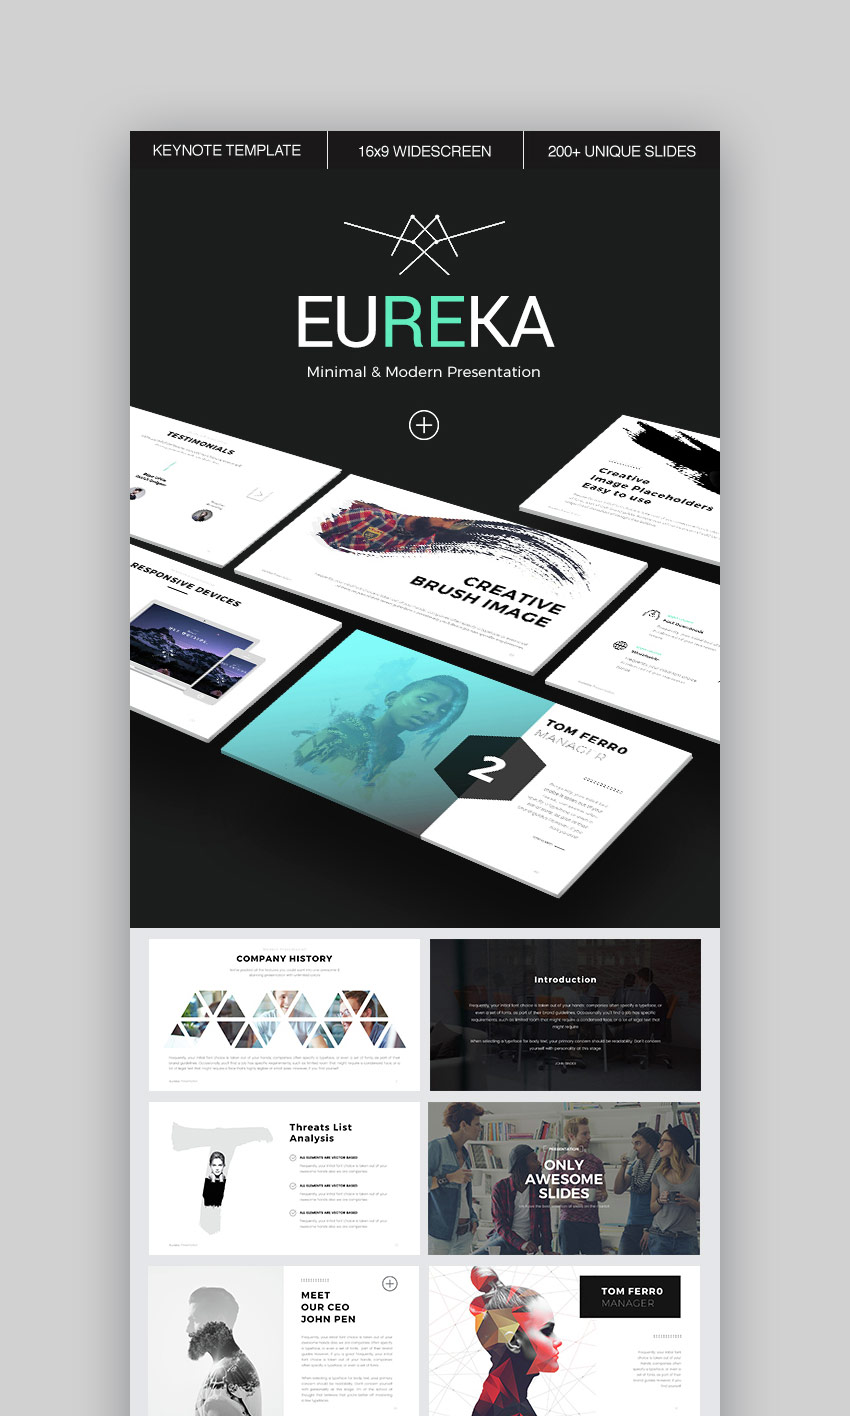 15 best keynote presentation templates for mac users eureka beautiful mac keynote presentation template toneelgroepblik Image collections